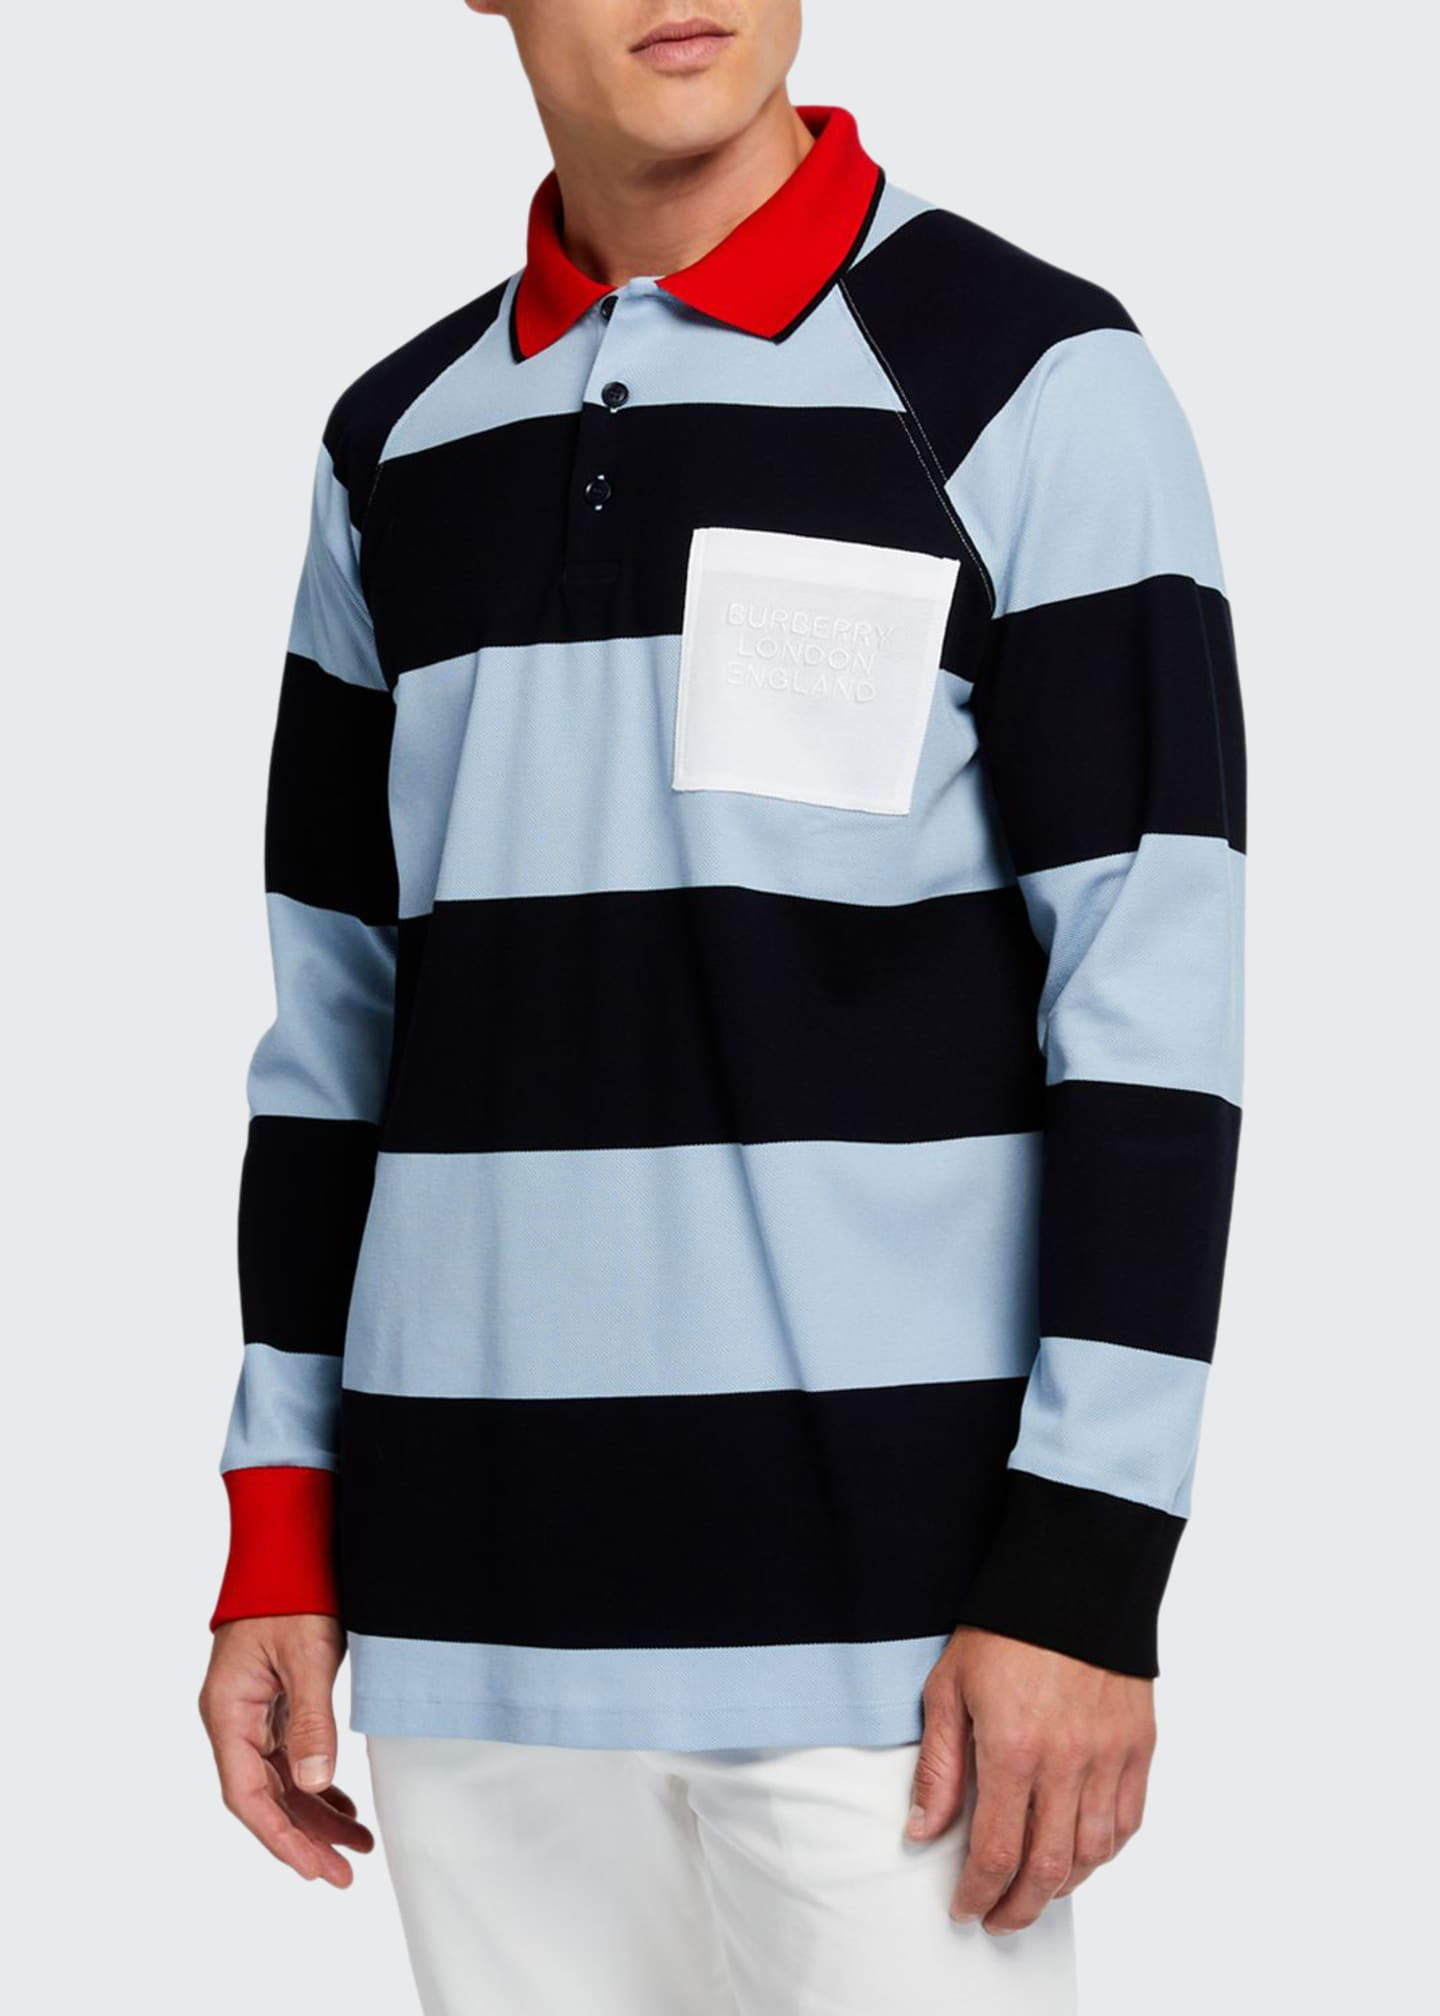 Burberry Men's Barford Striped Long-Sleeve Rugby Shirt